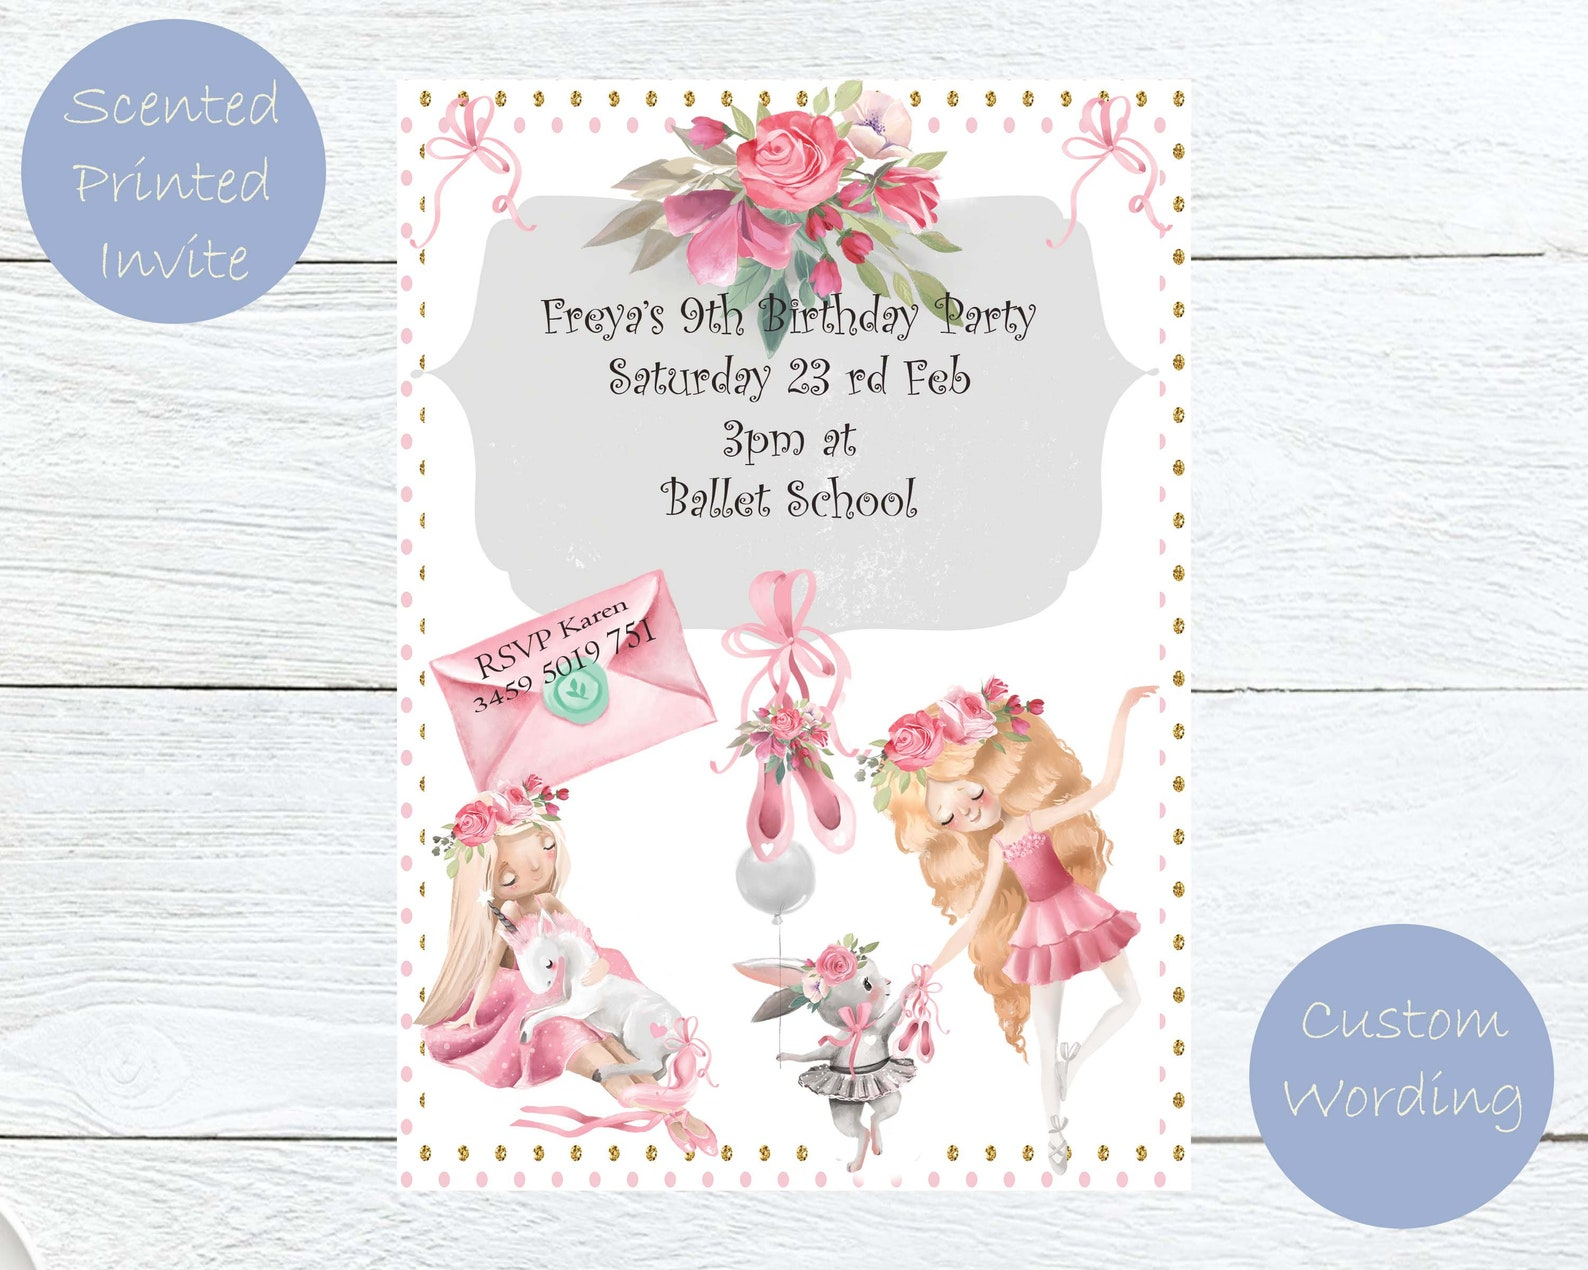 ballet party invitations with perfume, delicate floral scented ballerina birthday invitations, personalized printed kids party i